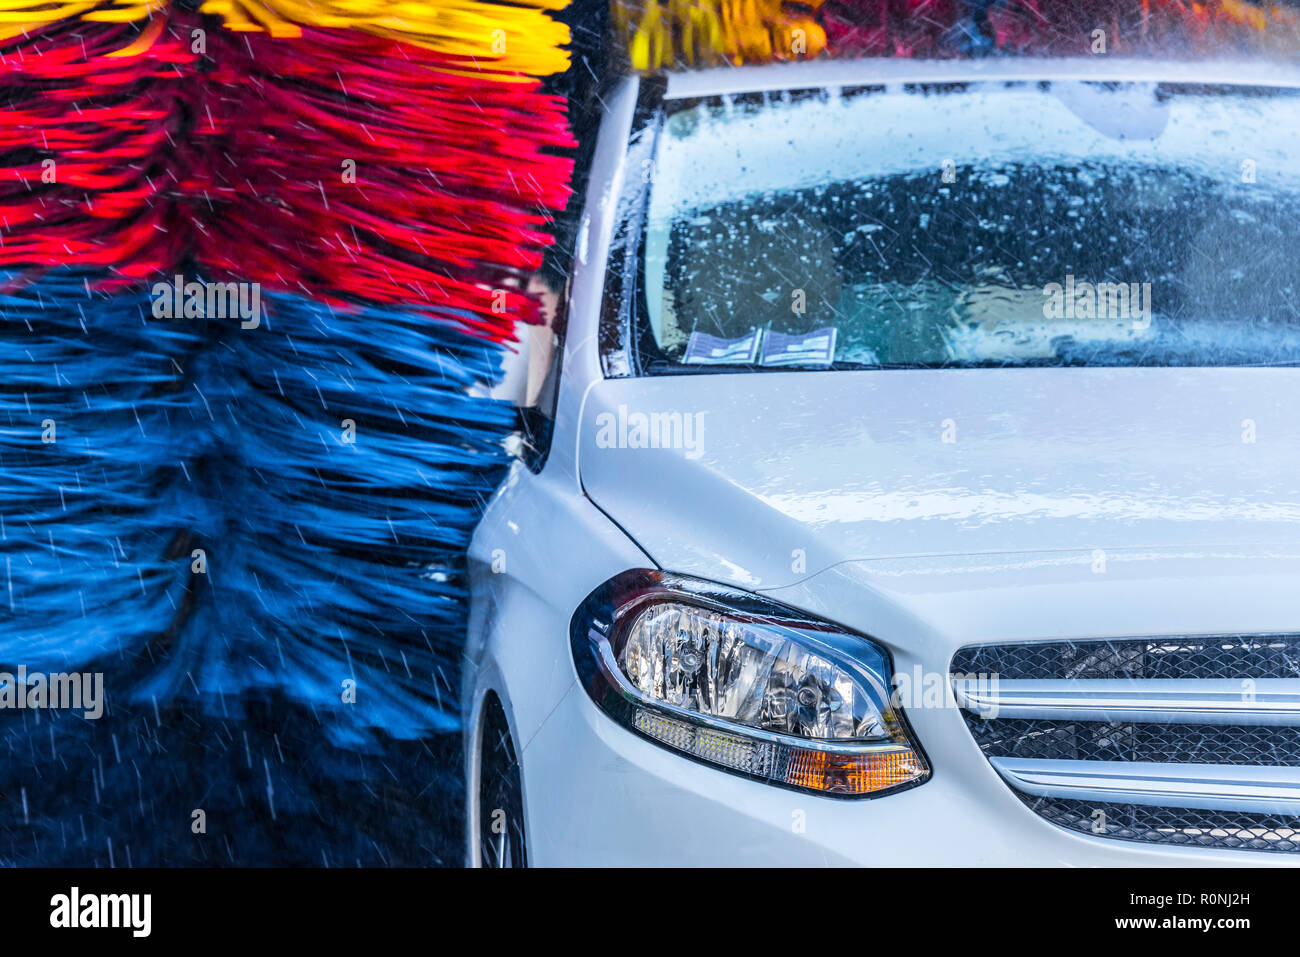 Car going through an automated car wash machine. - Stock Image